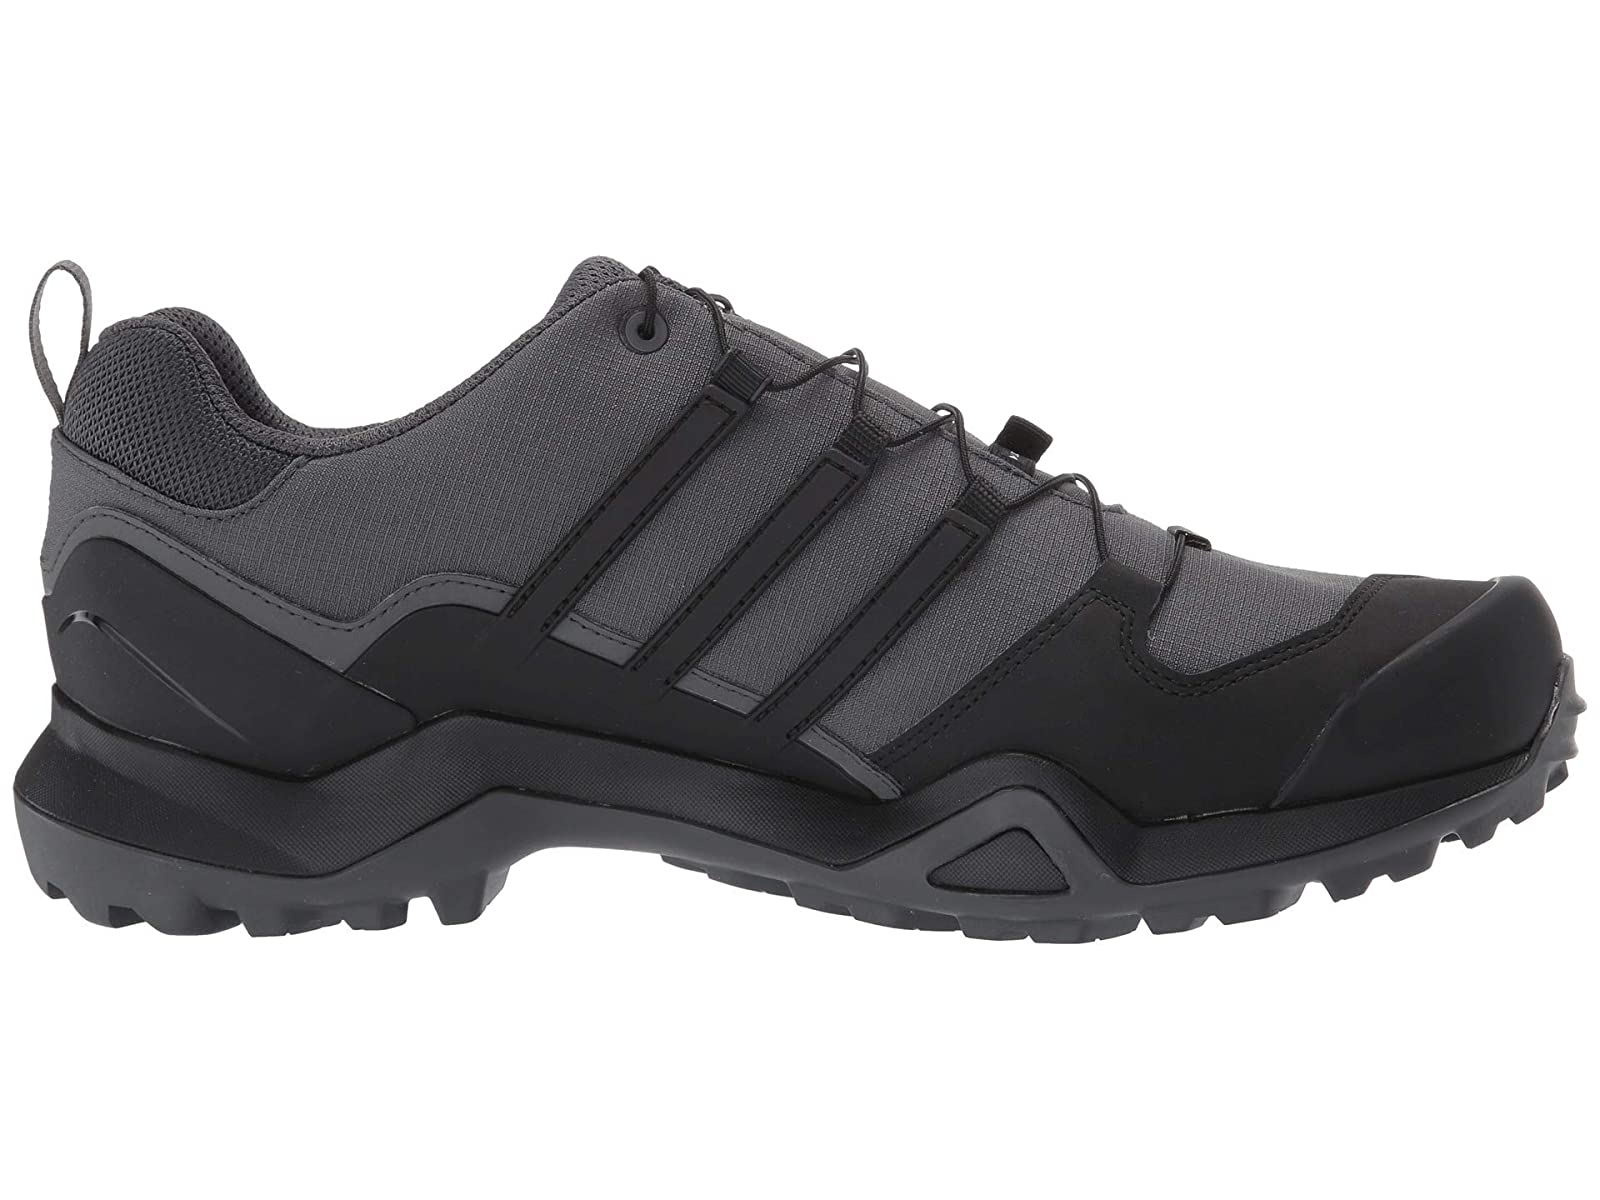 Man-039-s-Sneakers-amp-Athletic-Shoes-adidas-Outdoor-Terrex-Swift-R2-GTX thumbnail 14